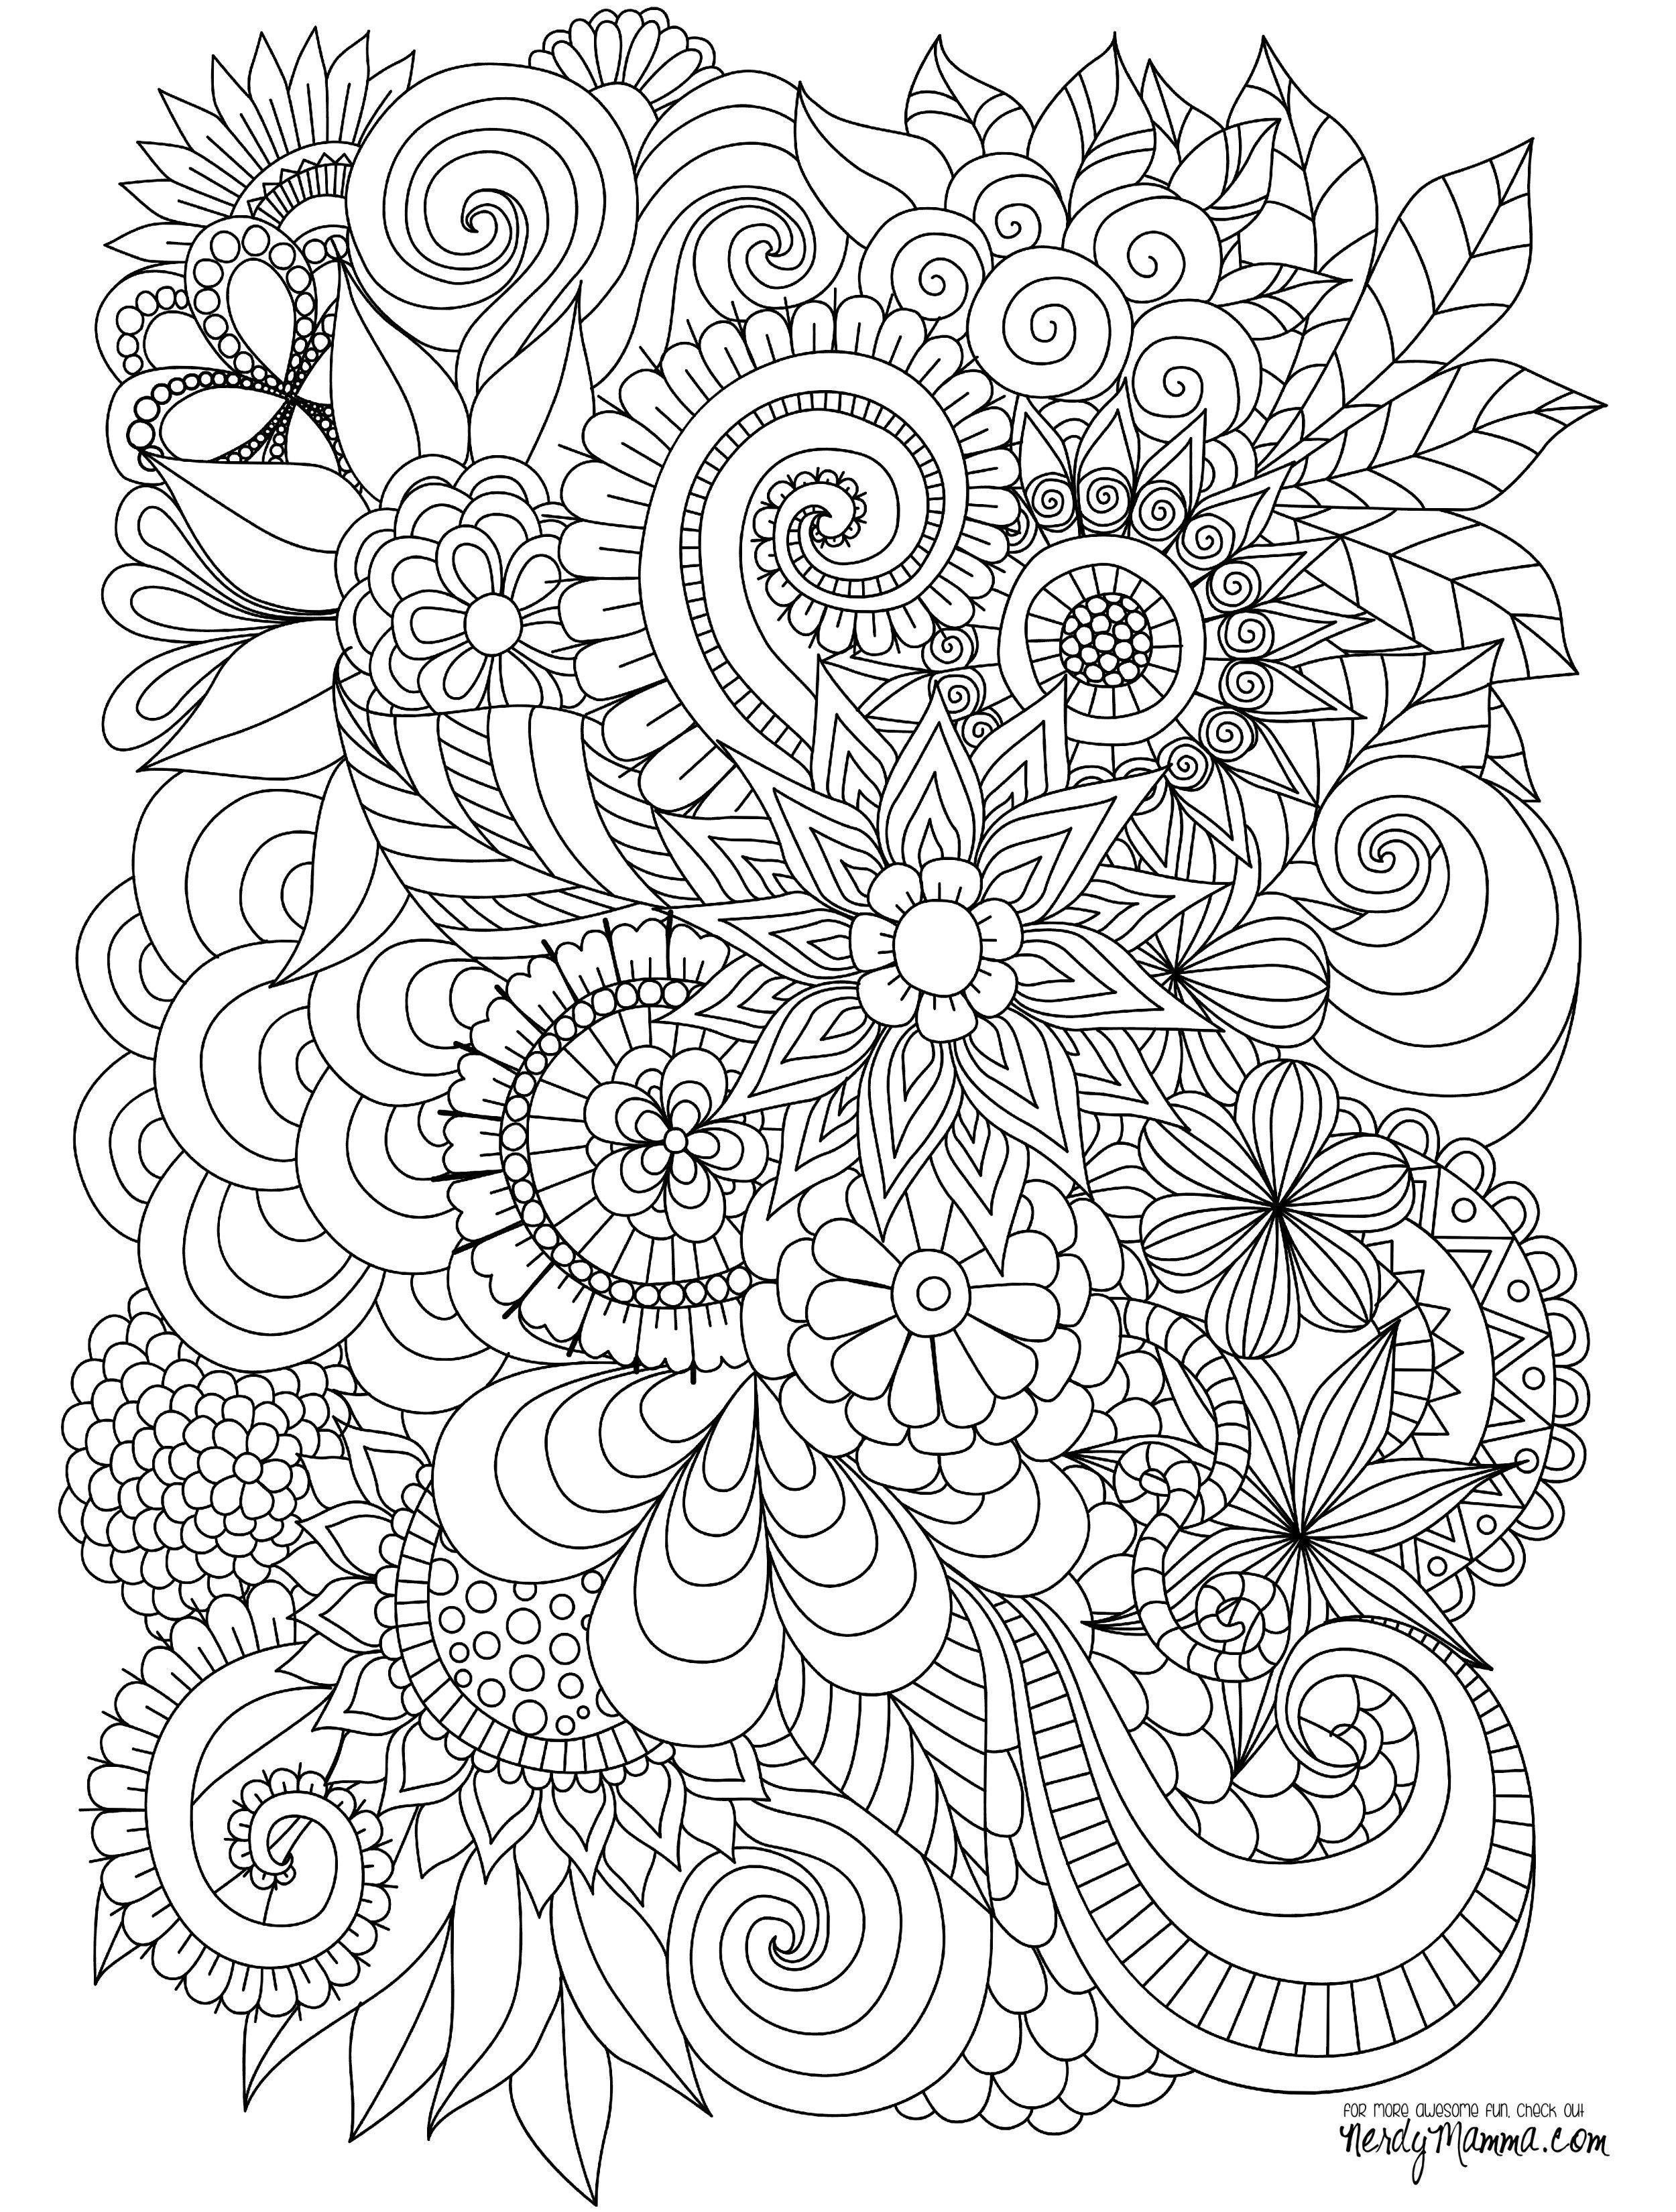 mehndi coloring pages a favorite from mehndi designs by marty noble mehndi mehndi coloring pages